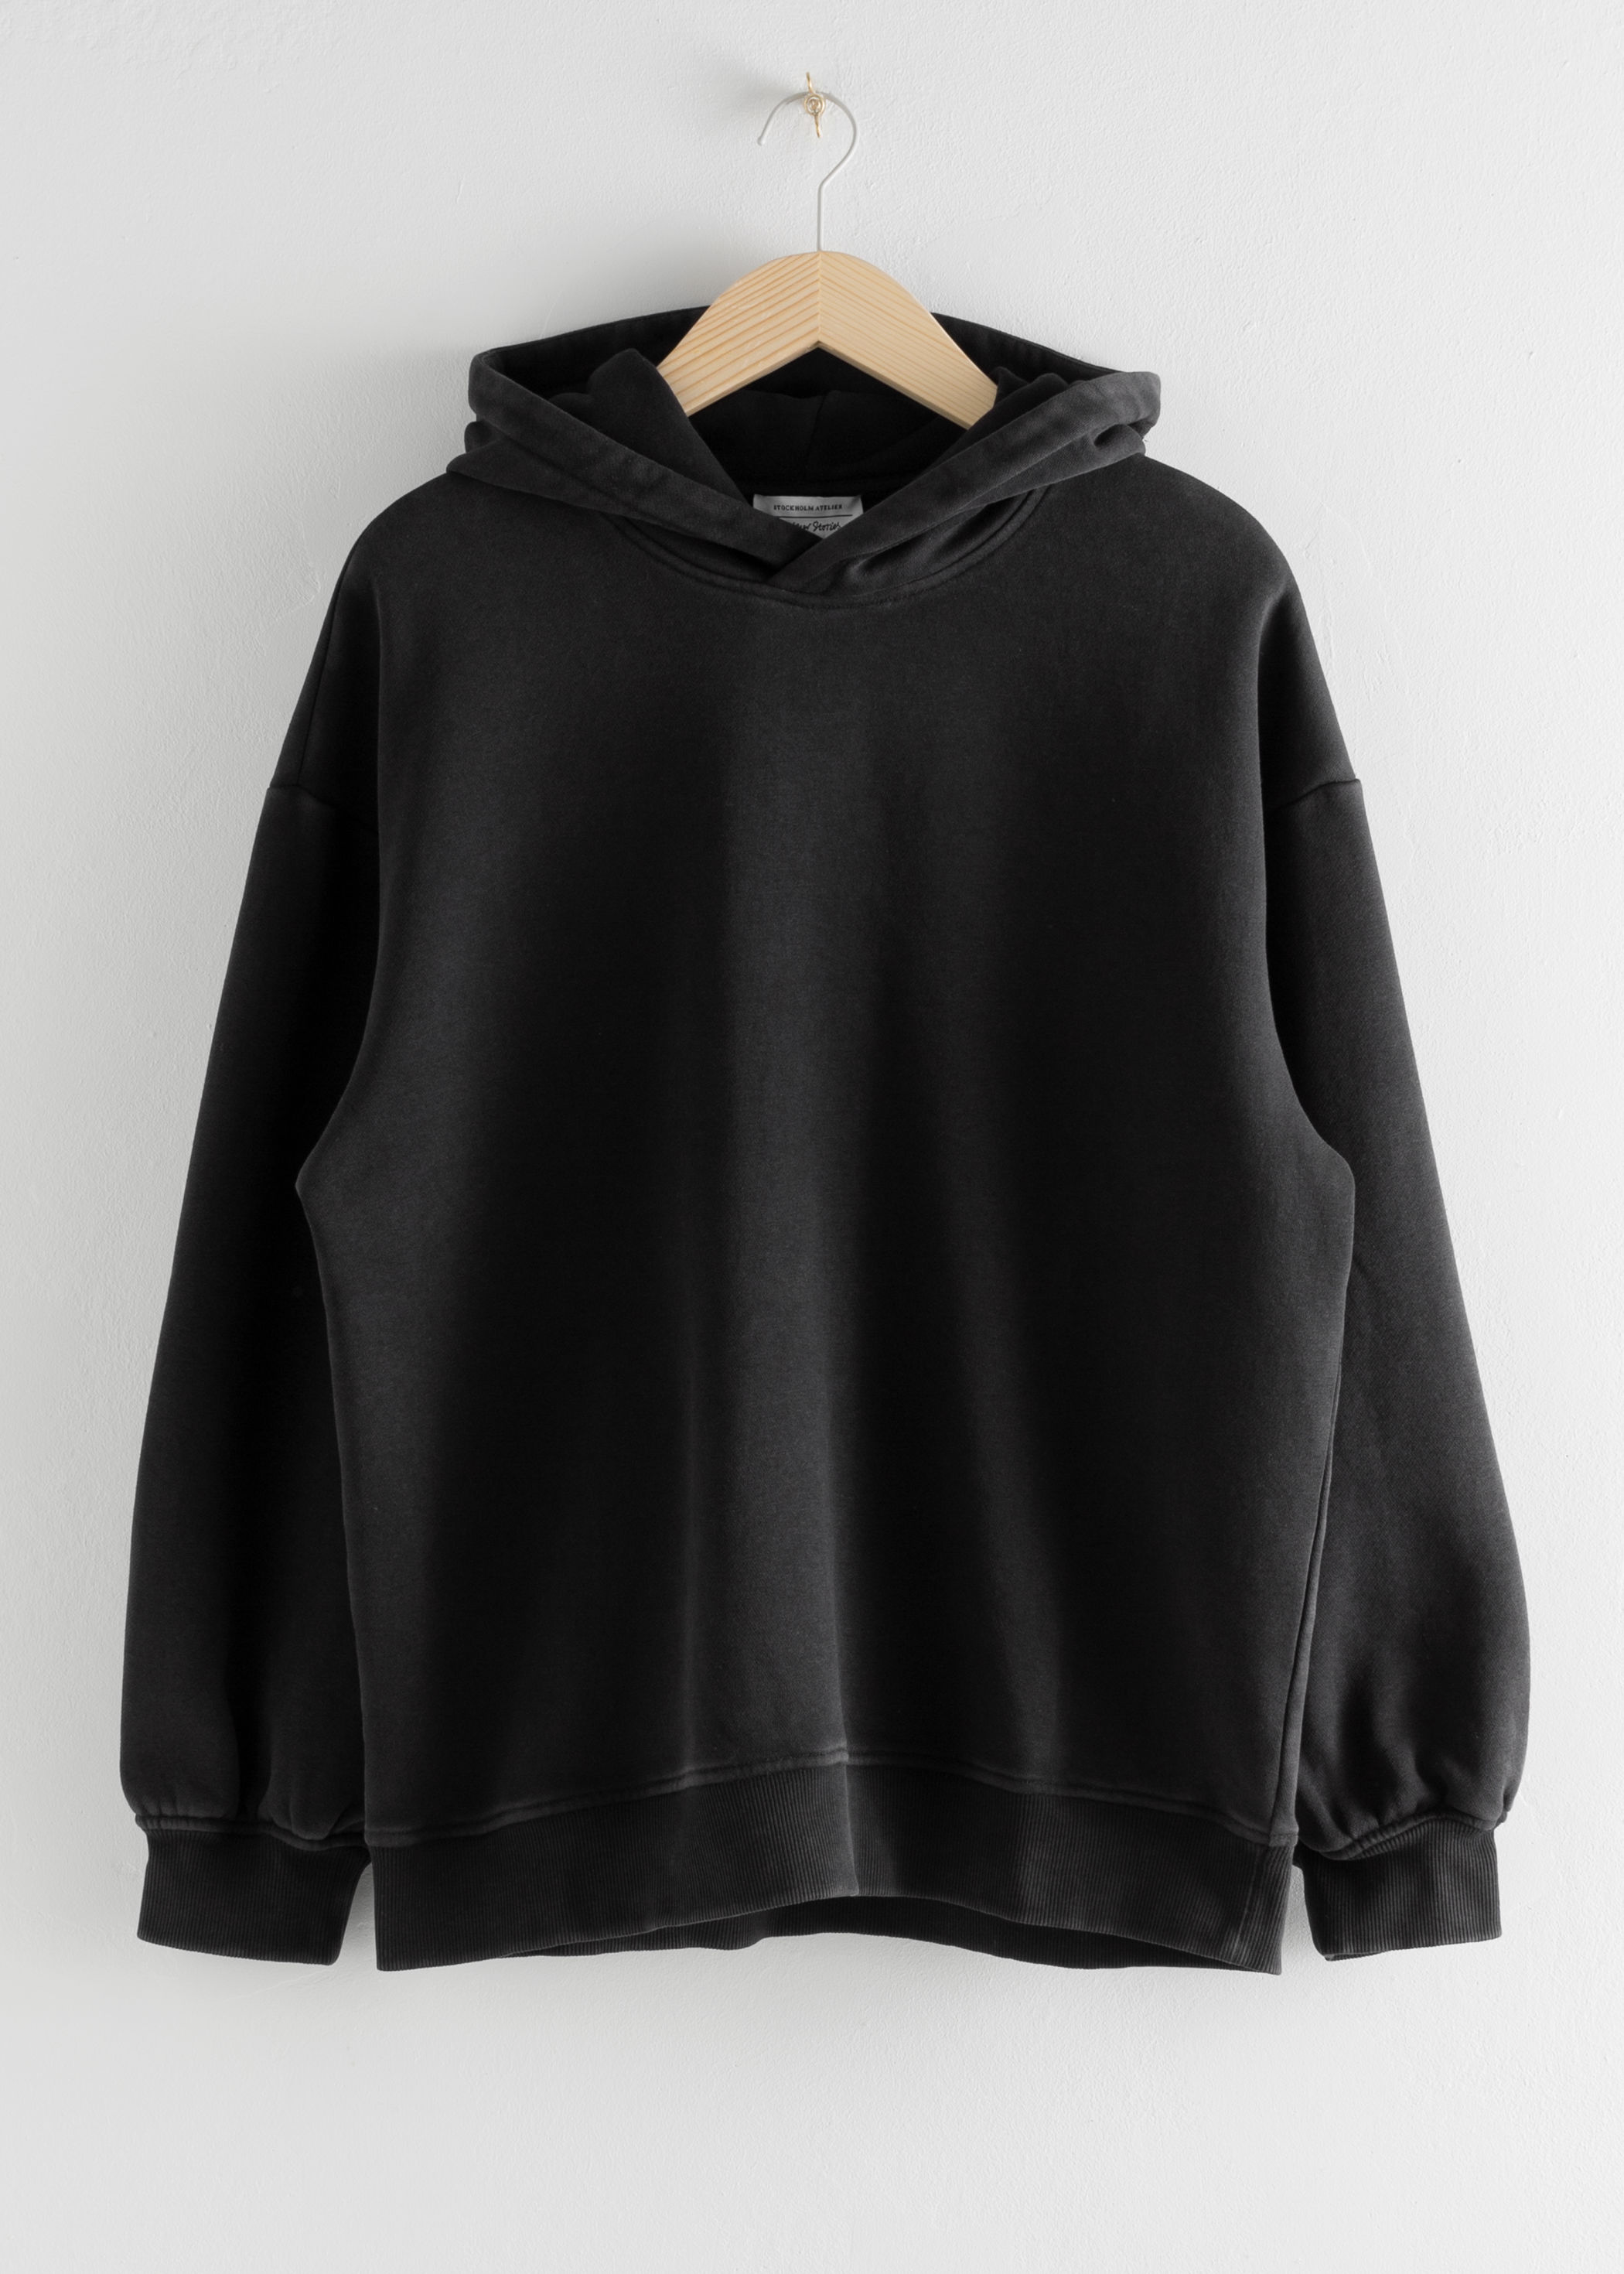 앤 아더 스토리즈 & OTHER STORIES Oversized Hooded Boxy Sweatshirt,Black